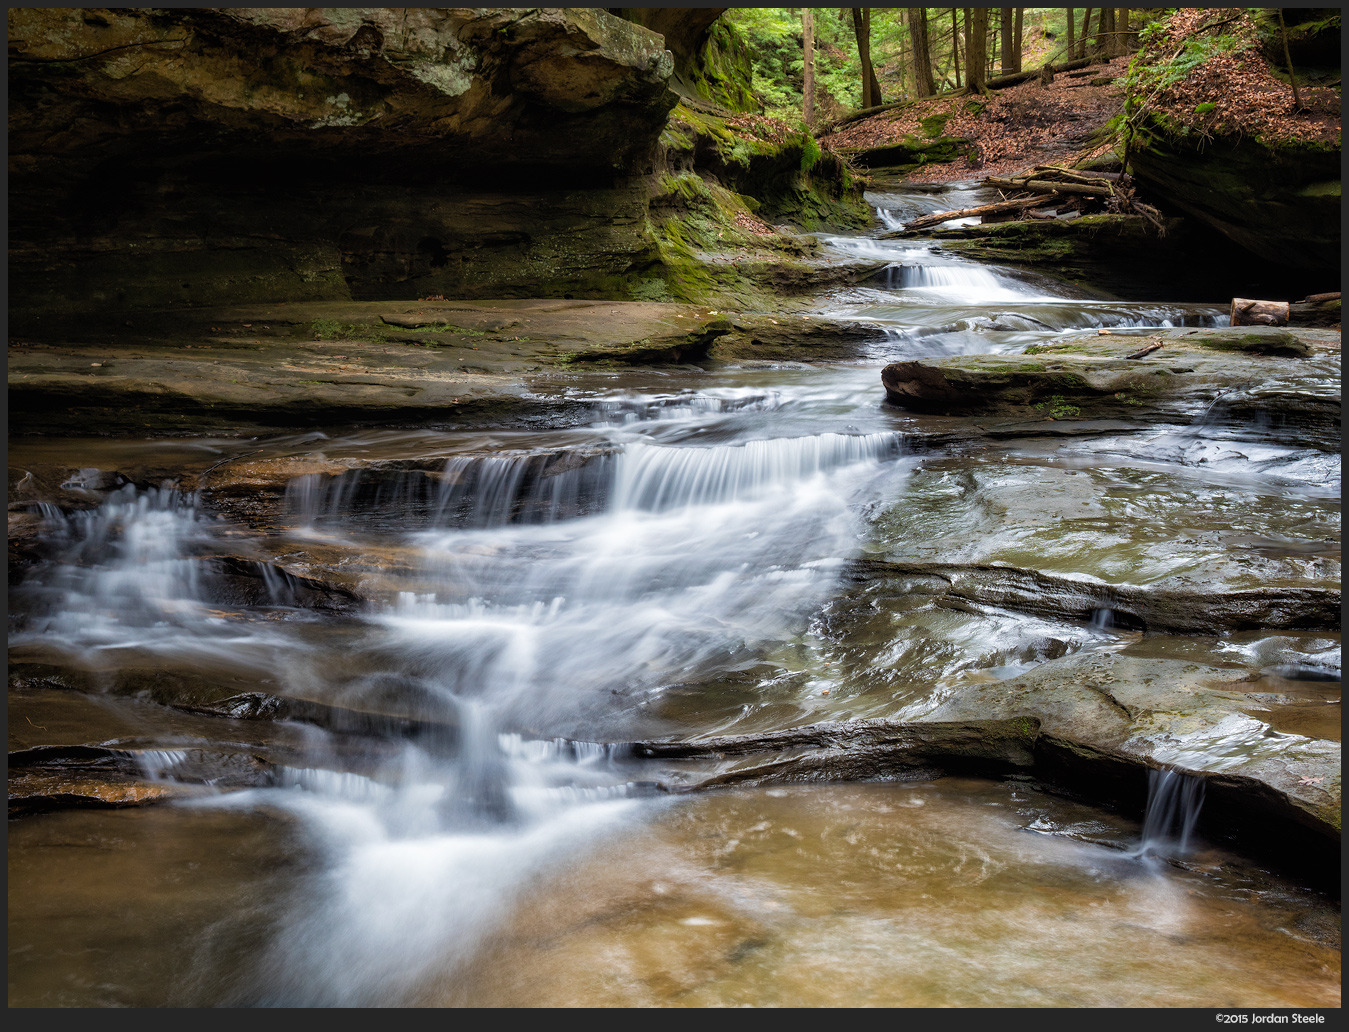 Middle Falls, Hocking Hills, OH - Panasonic GX8 with